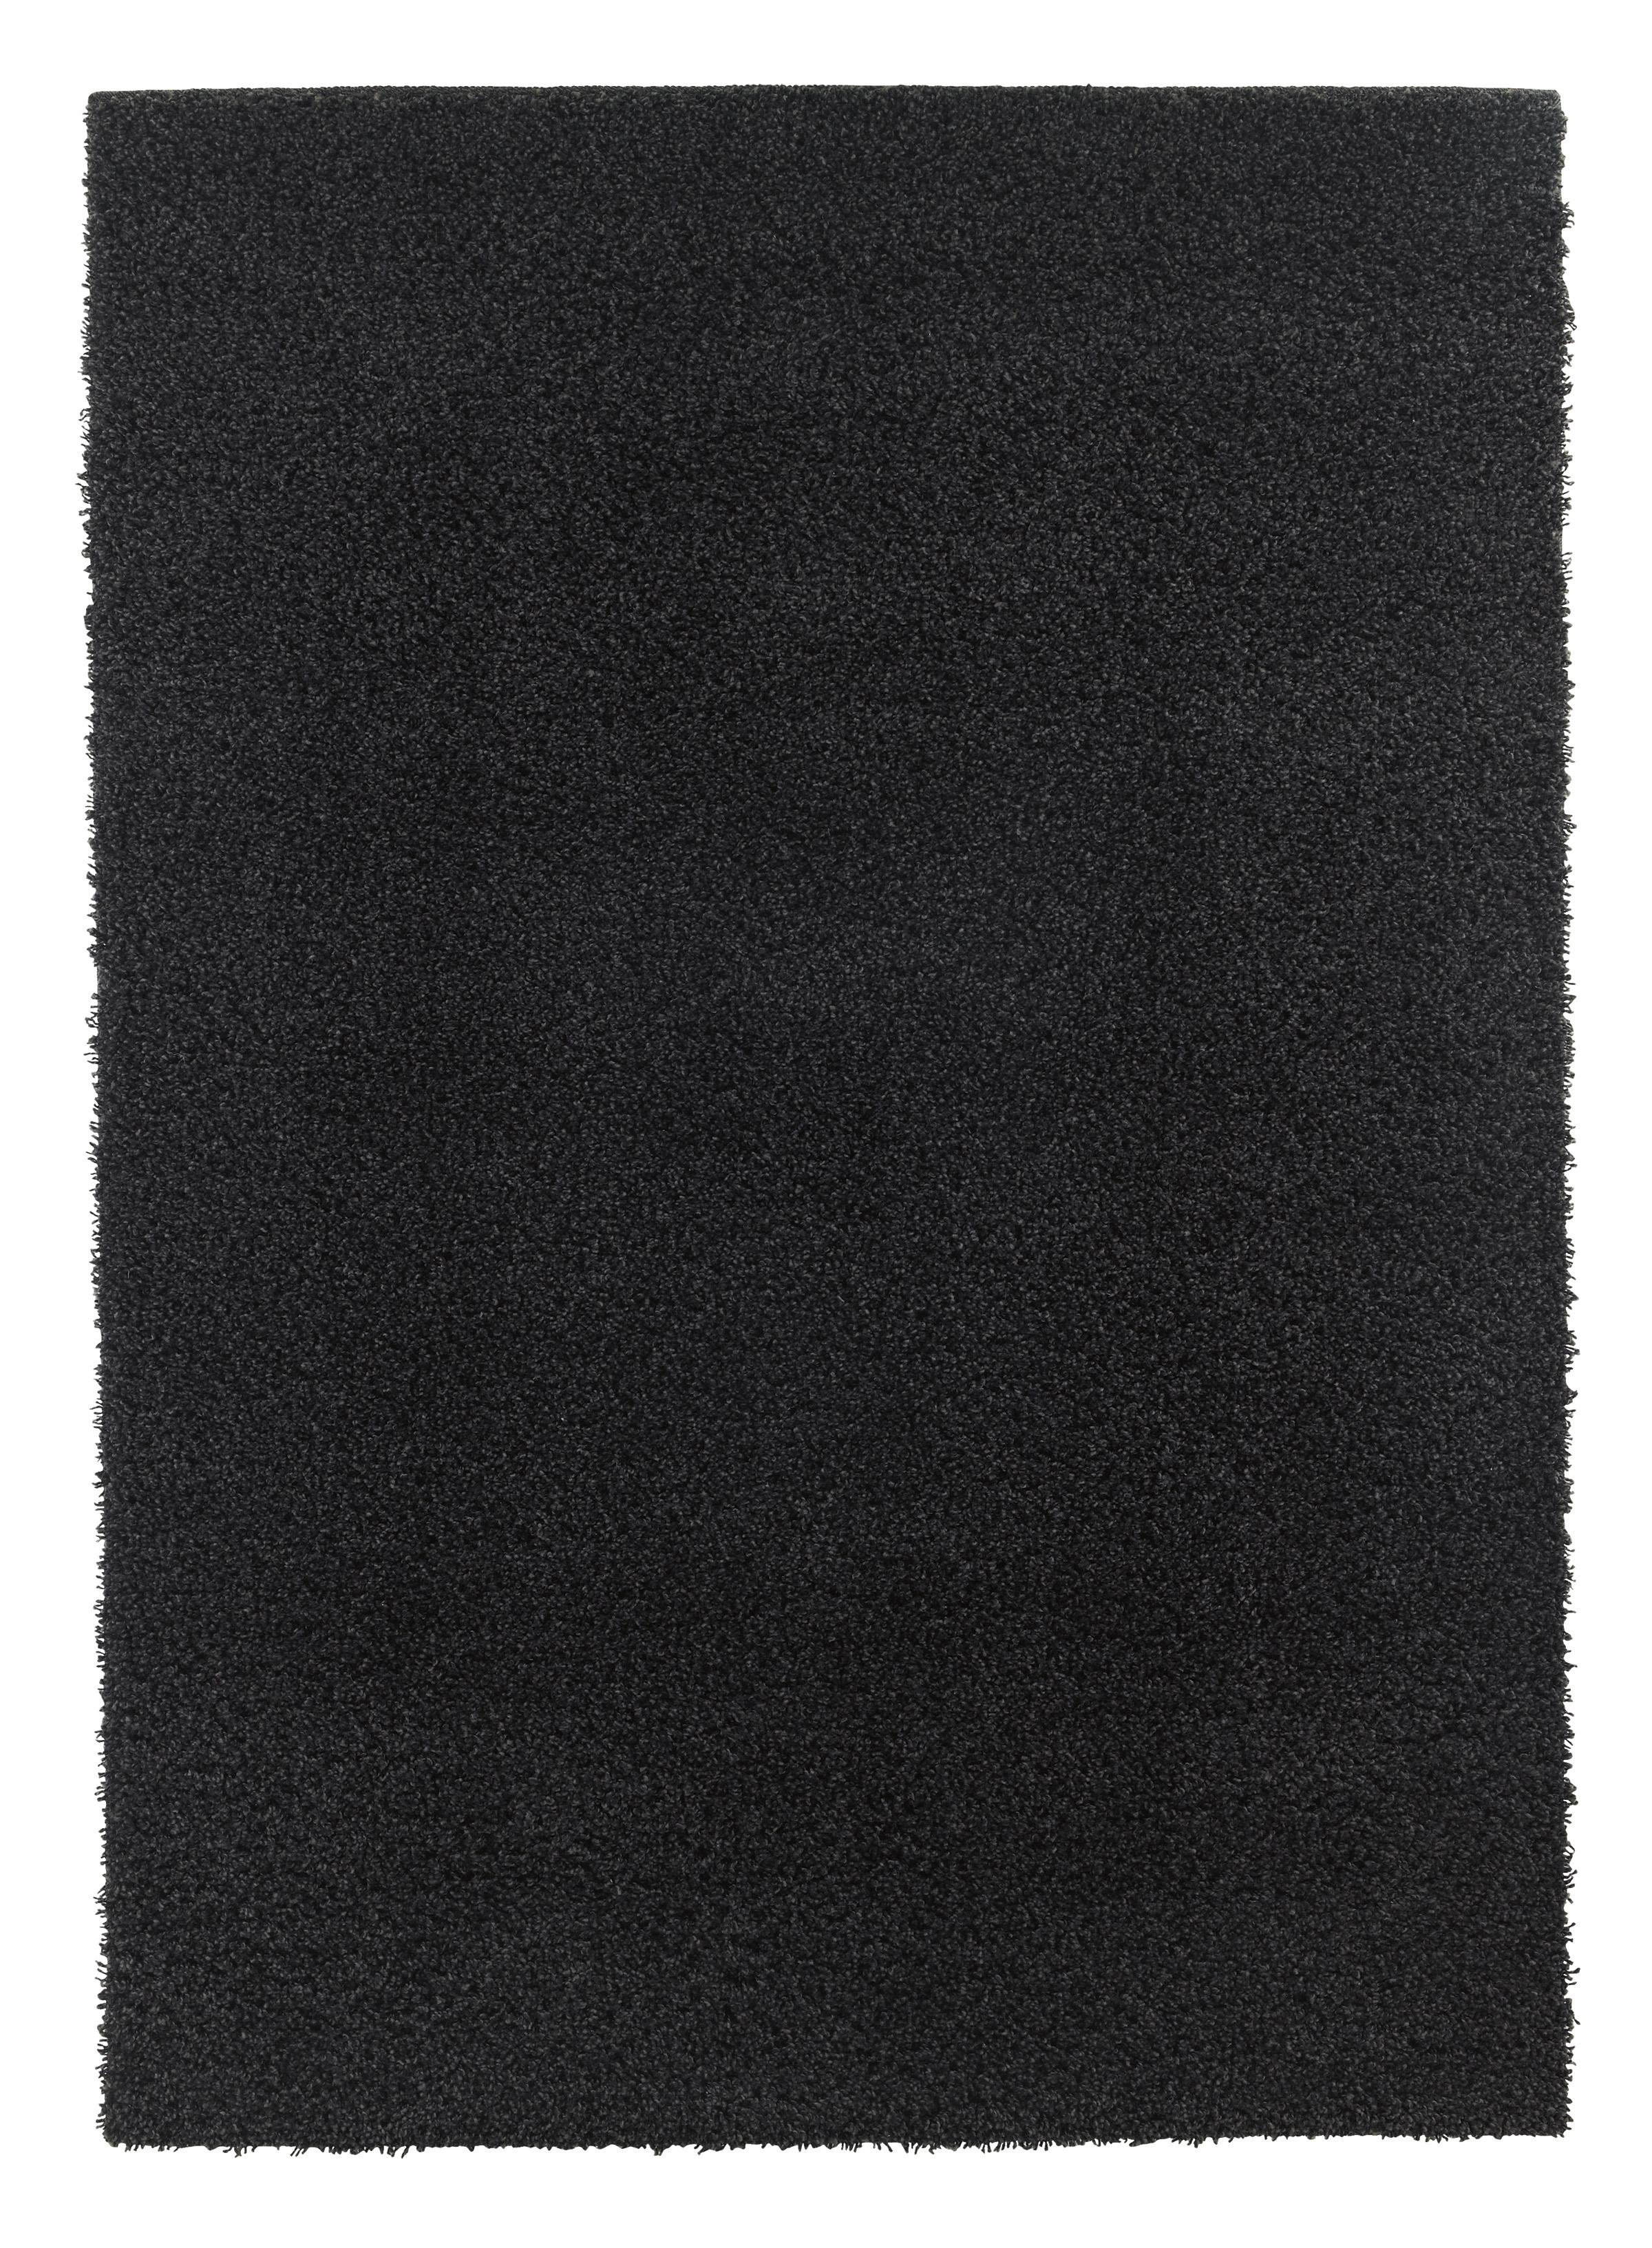 Transitional Area Rugs Caci Charcoal Medium Rug by Signature Design by Ashley at Furniture Barn